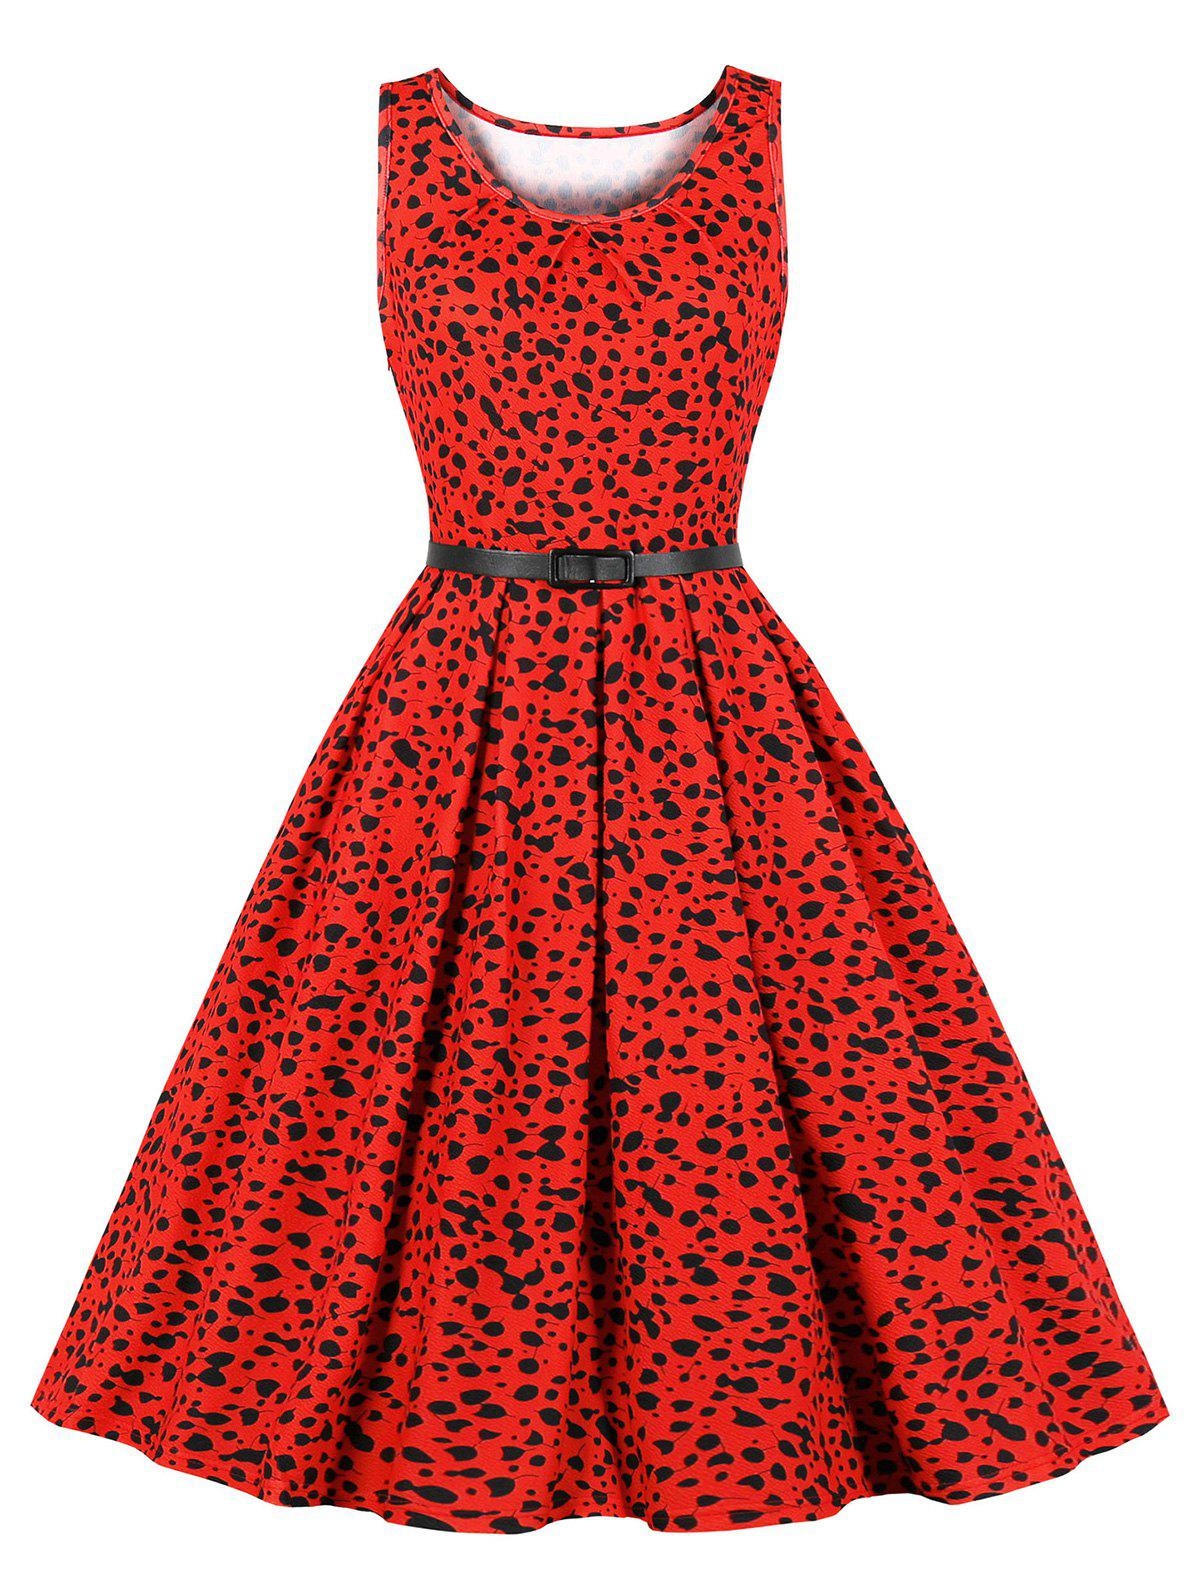 Allover Printed Belted Flared Retro Dress - RED S